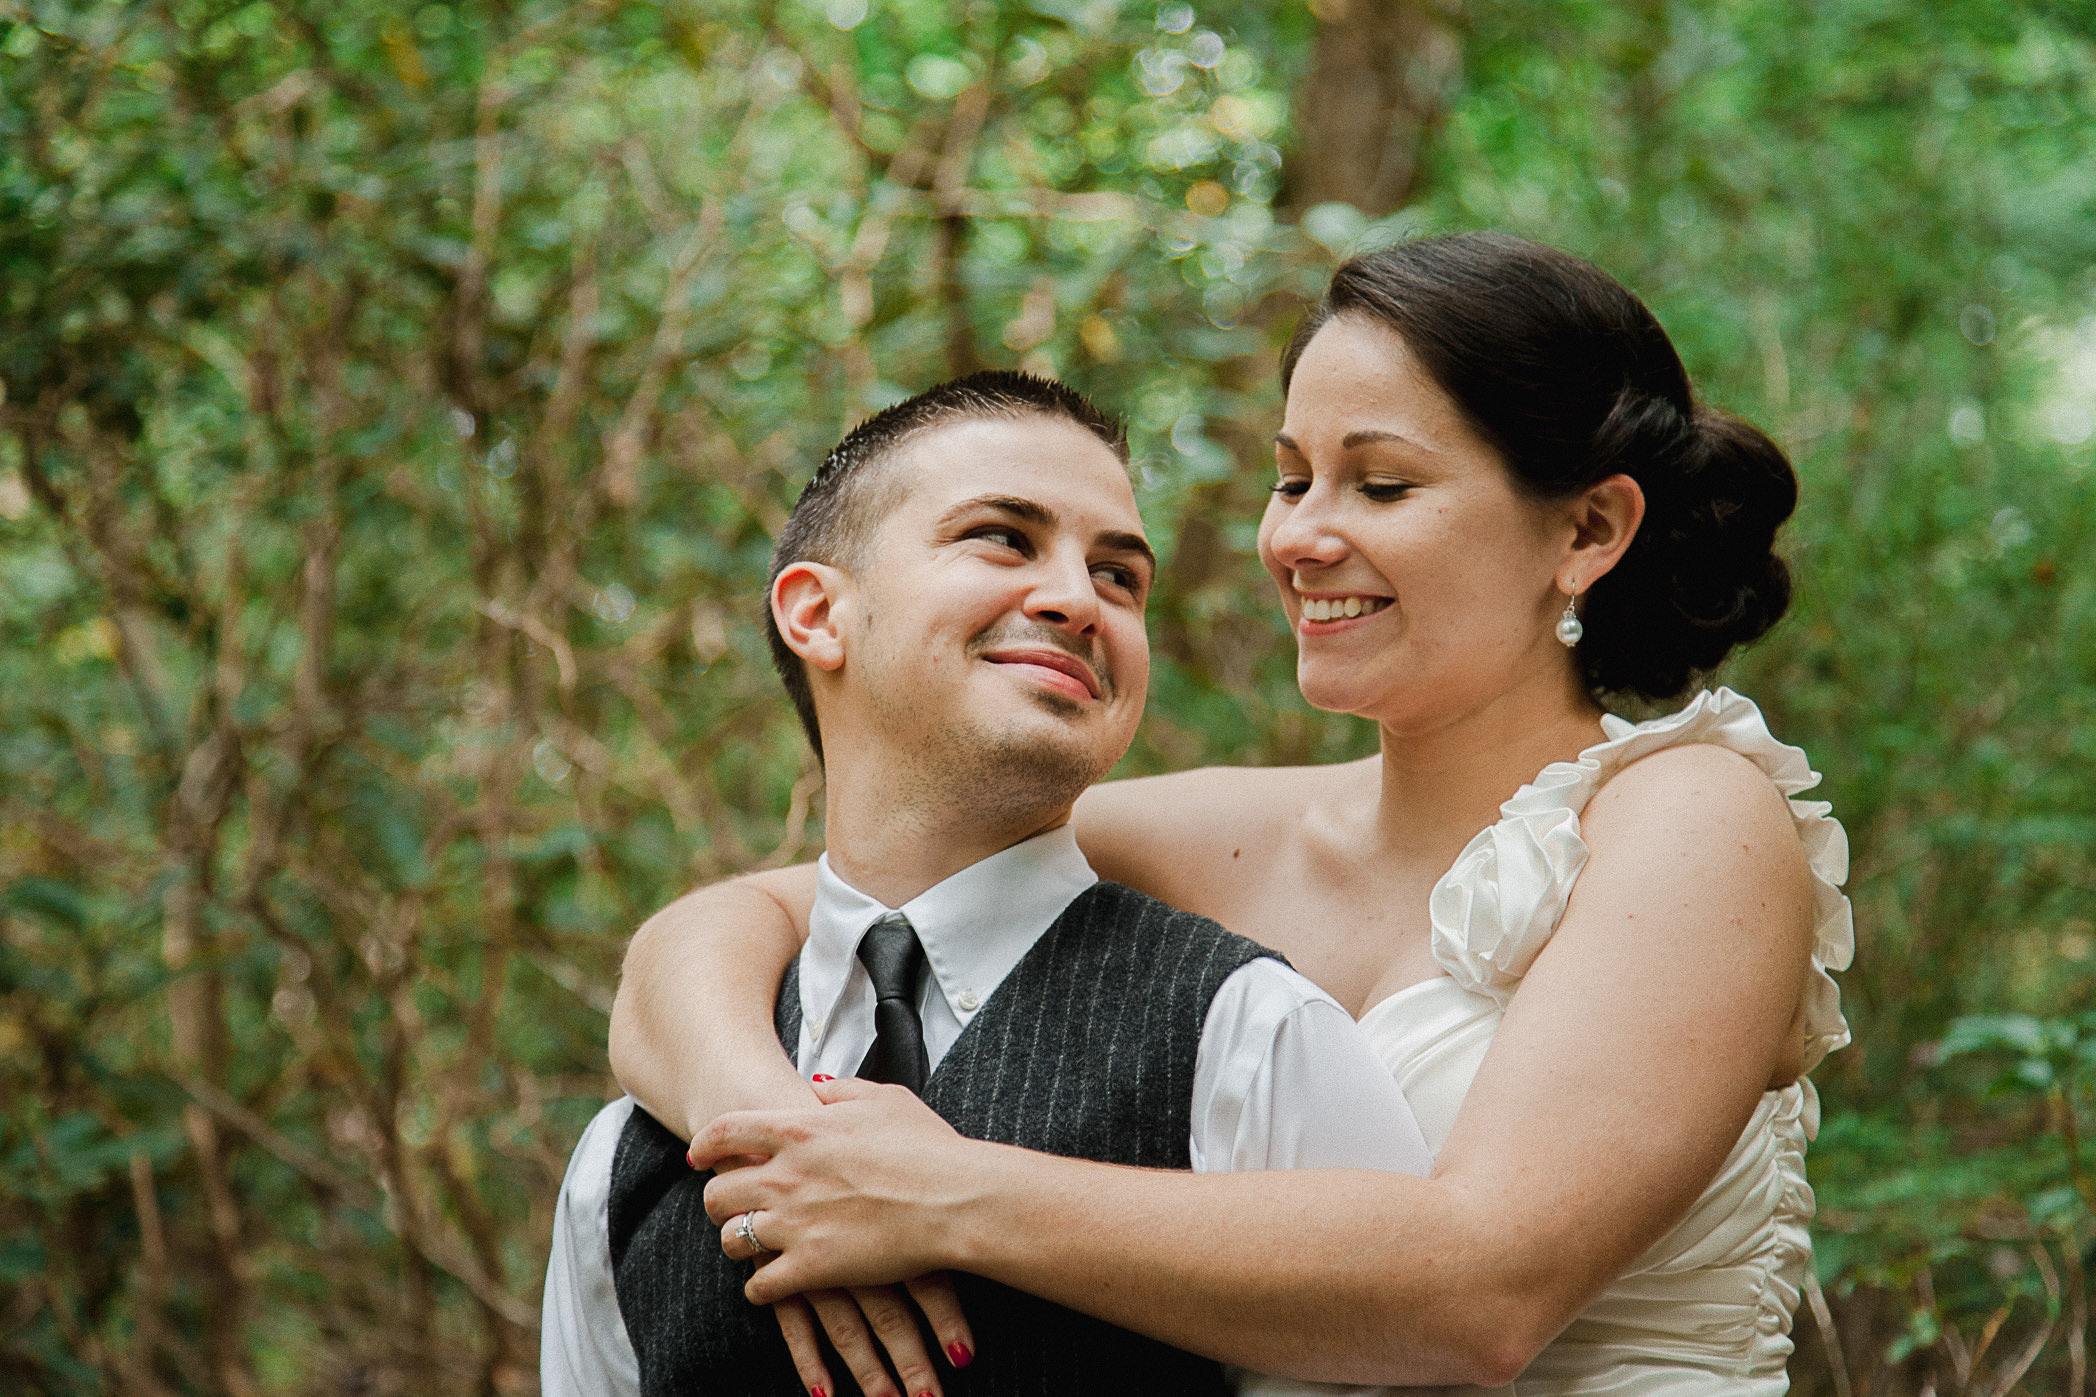 wildcat_falls_wedding (17 of 36).jpg